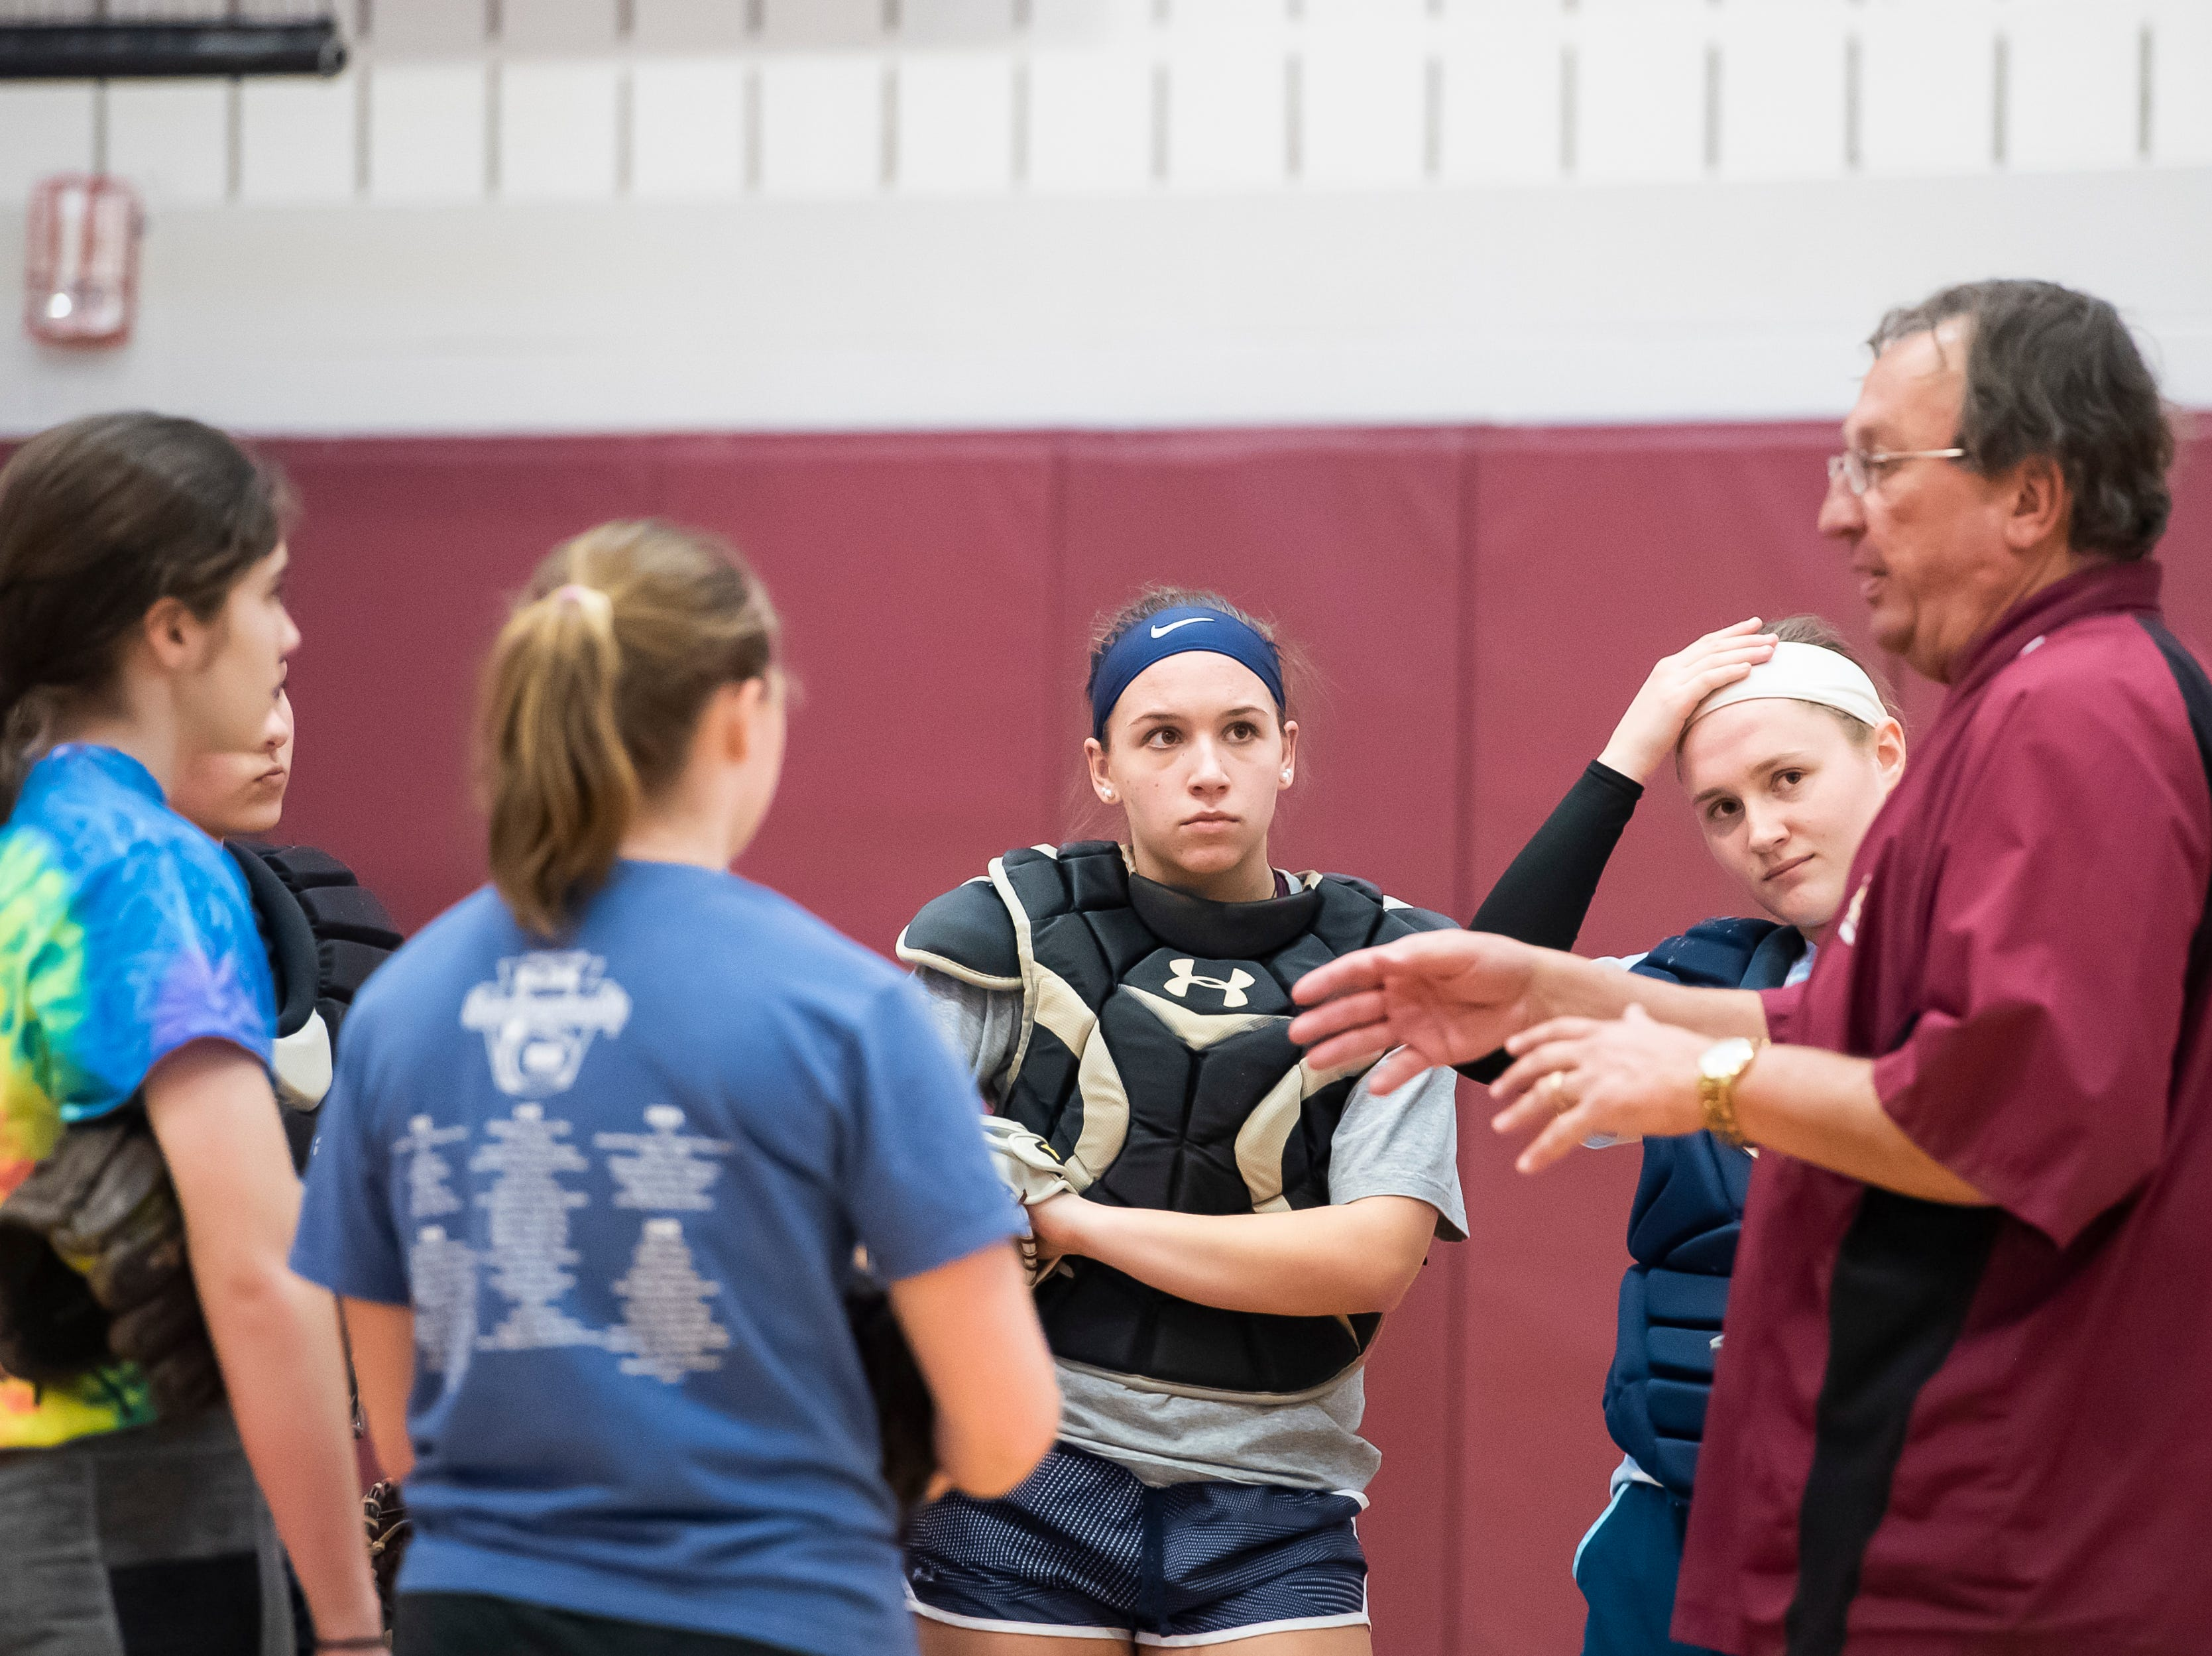 A group of Gettysburg softball catchers and pitchers listen to assistant coach Bernie Yannettie on the first day of softball practice inside the Gettysburg High School gym Monday, March 4, 2019.